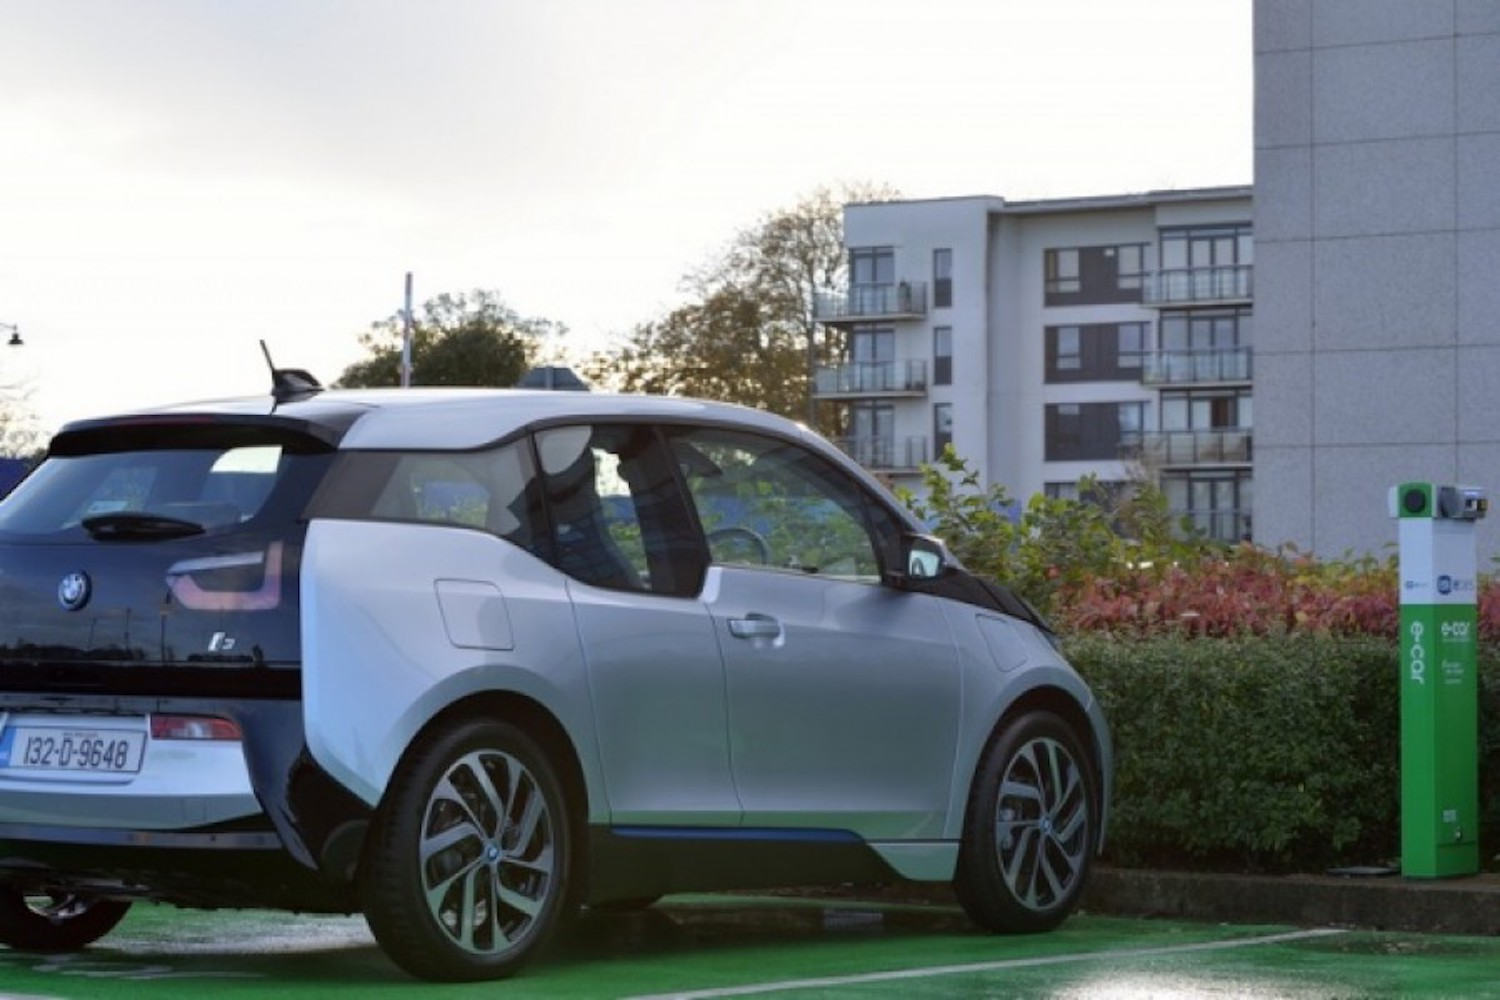 Car News | Fewer than half of Irish drivers confident in electric cars | CompleteCar.ie